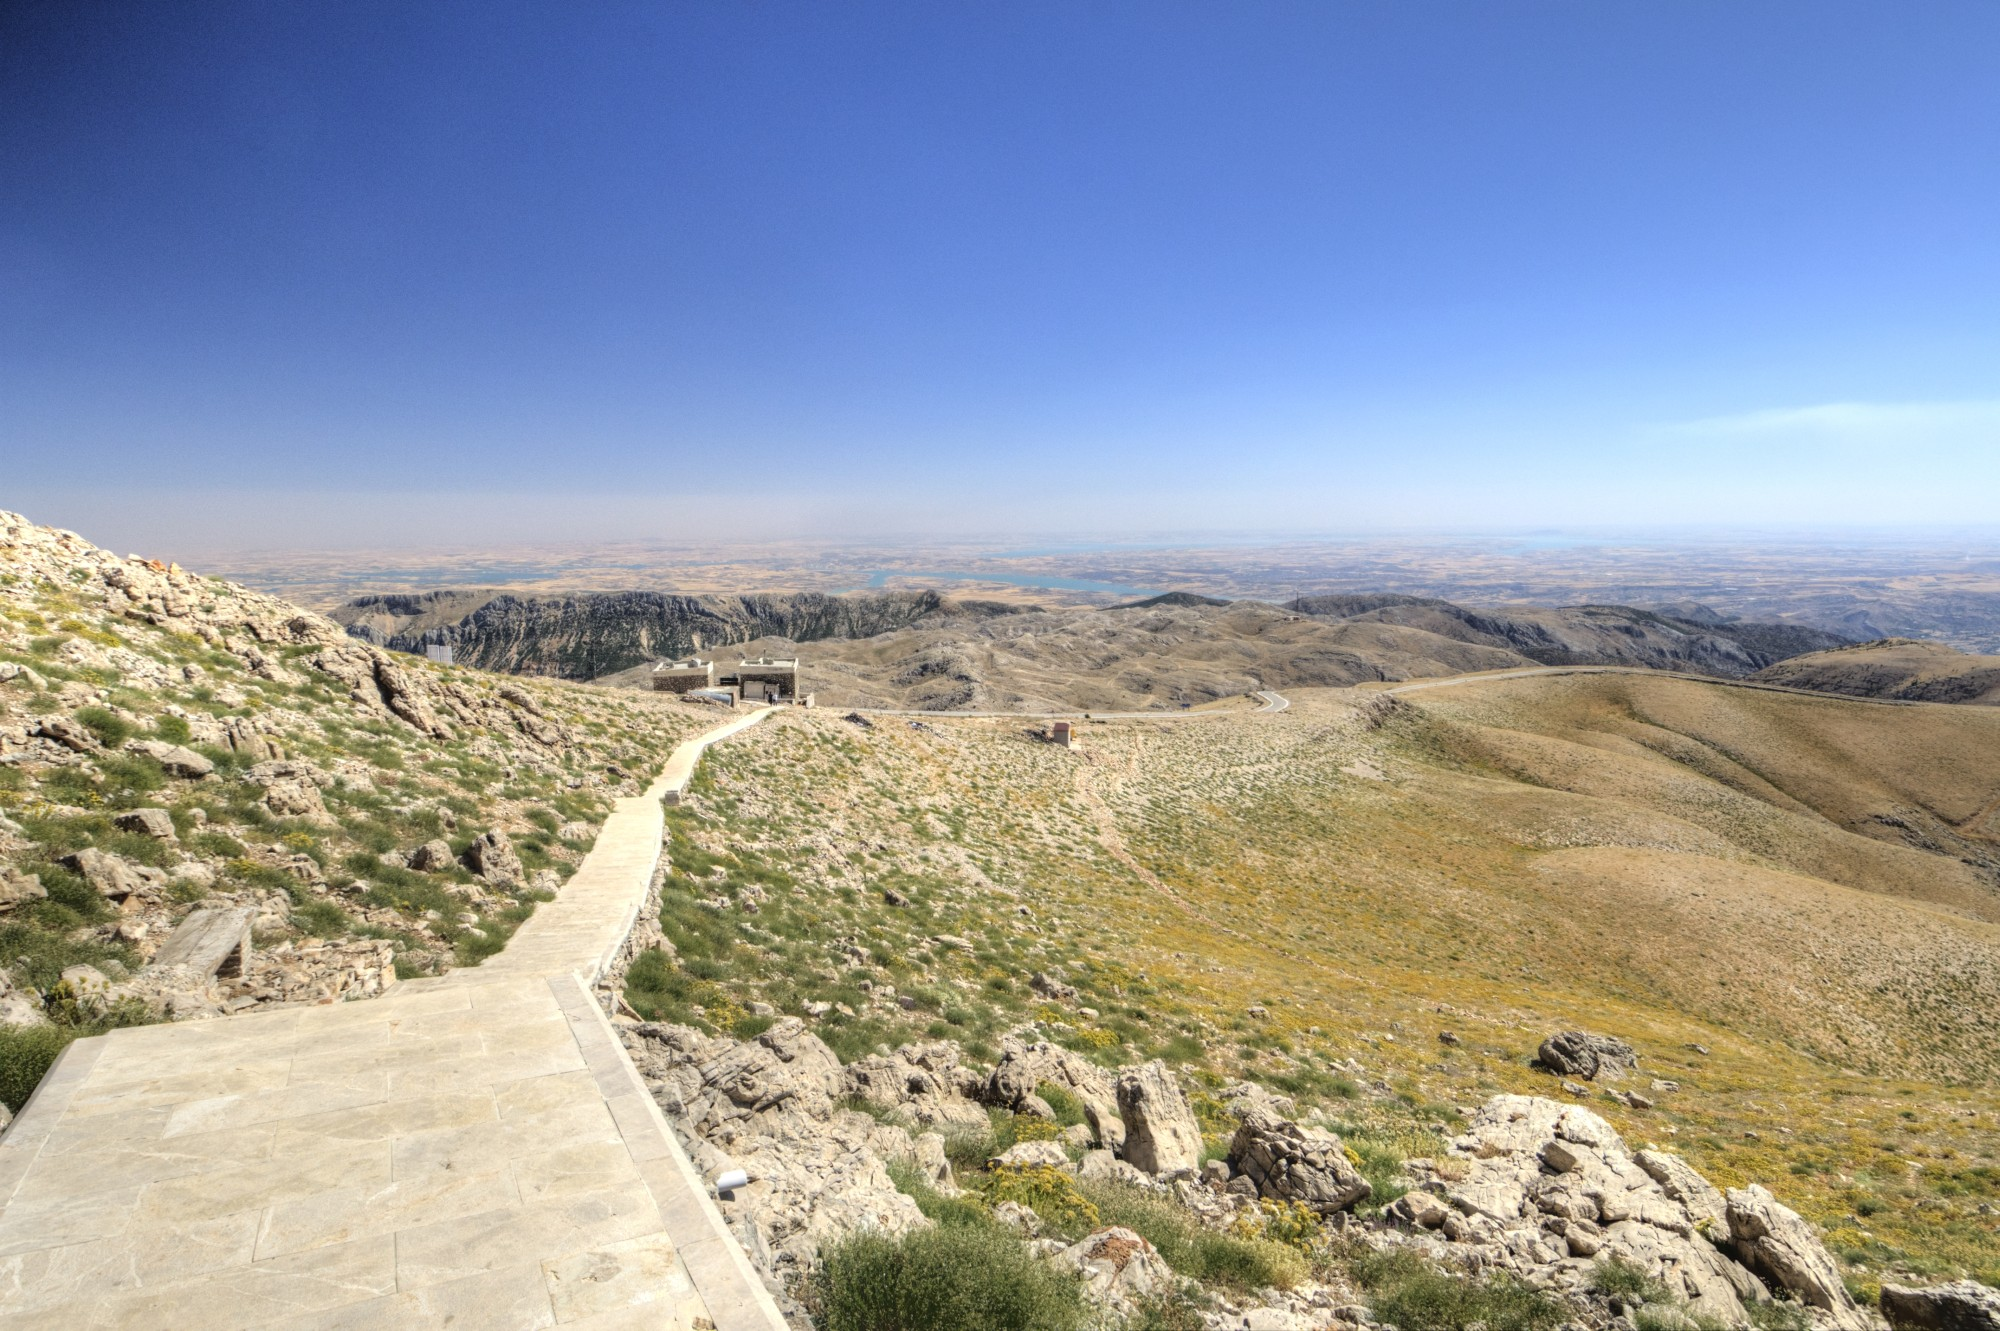 The view from Mount Nemrut in the direction of Euphrates